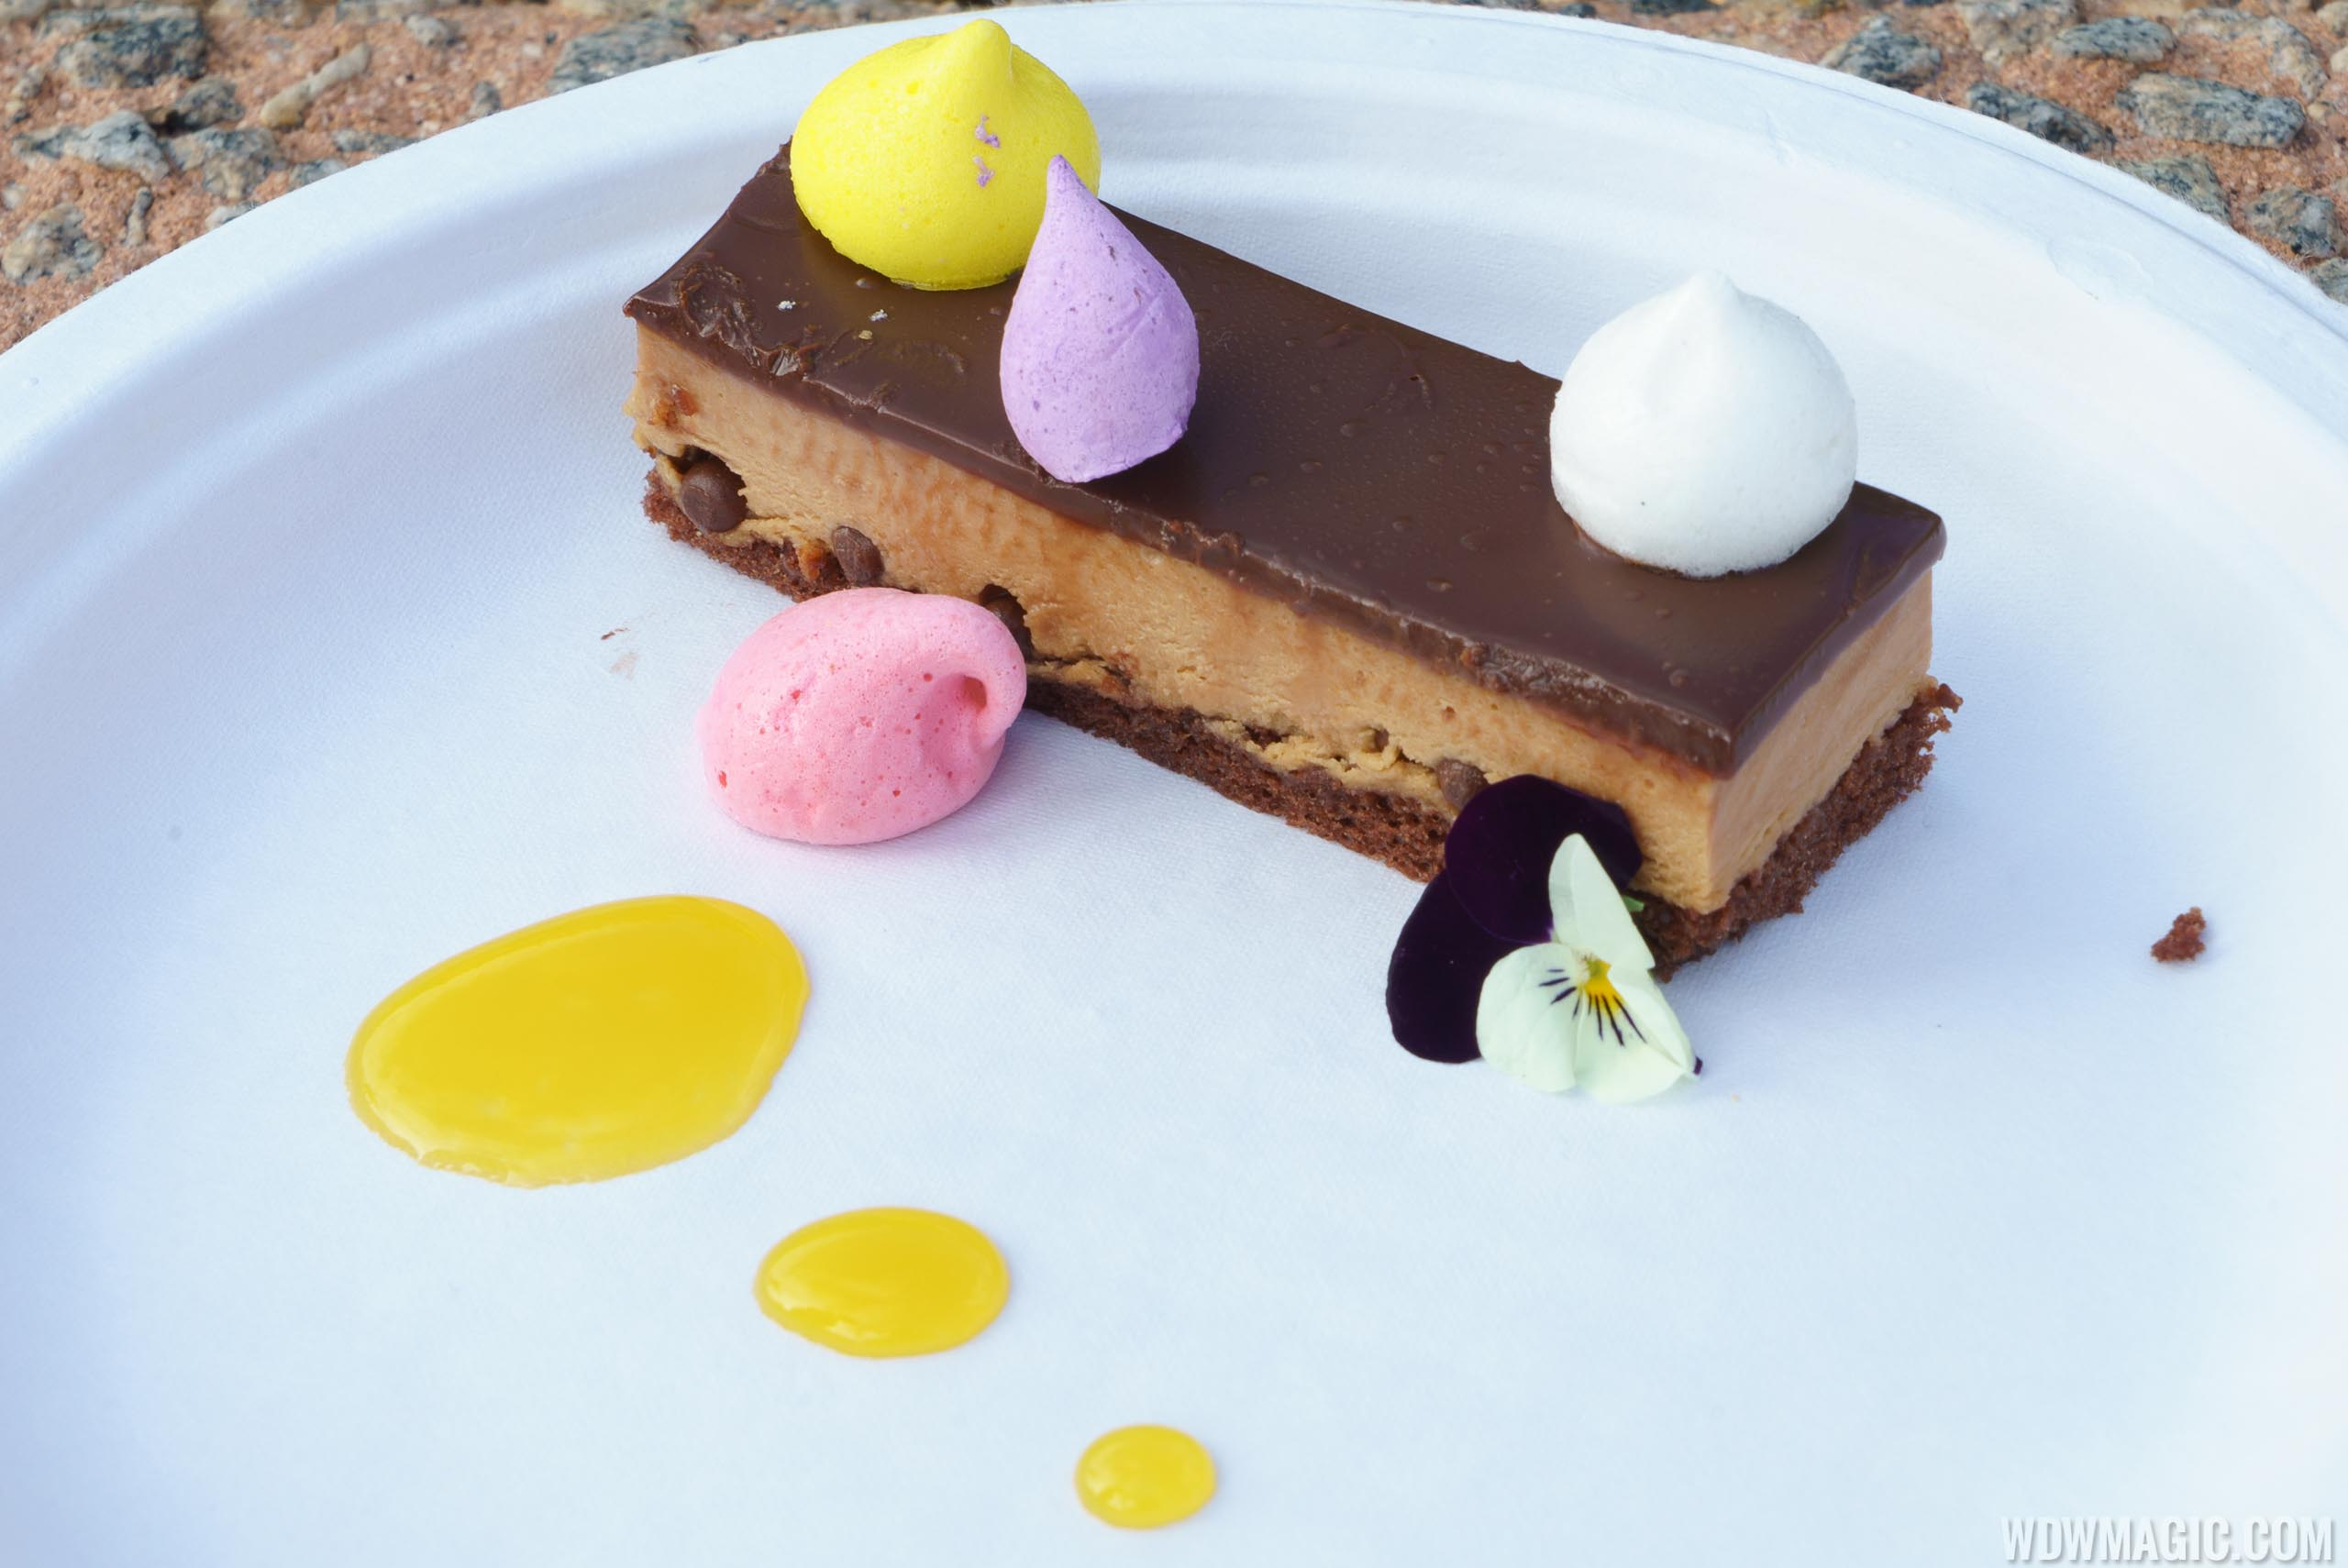 Festival of the Arts Food Studio - Decadent Delights - Crisp Caramel Chocolate Mousse Bar, Flavored Merengue Kisses and Passion Fruit Sauce